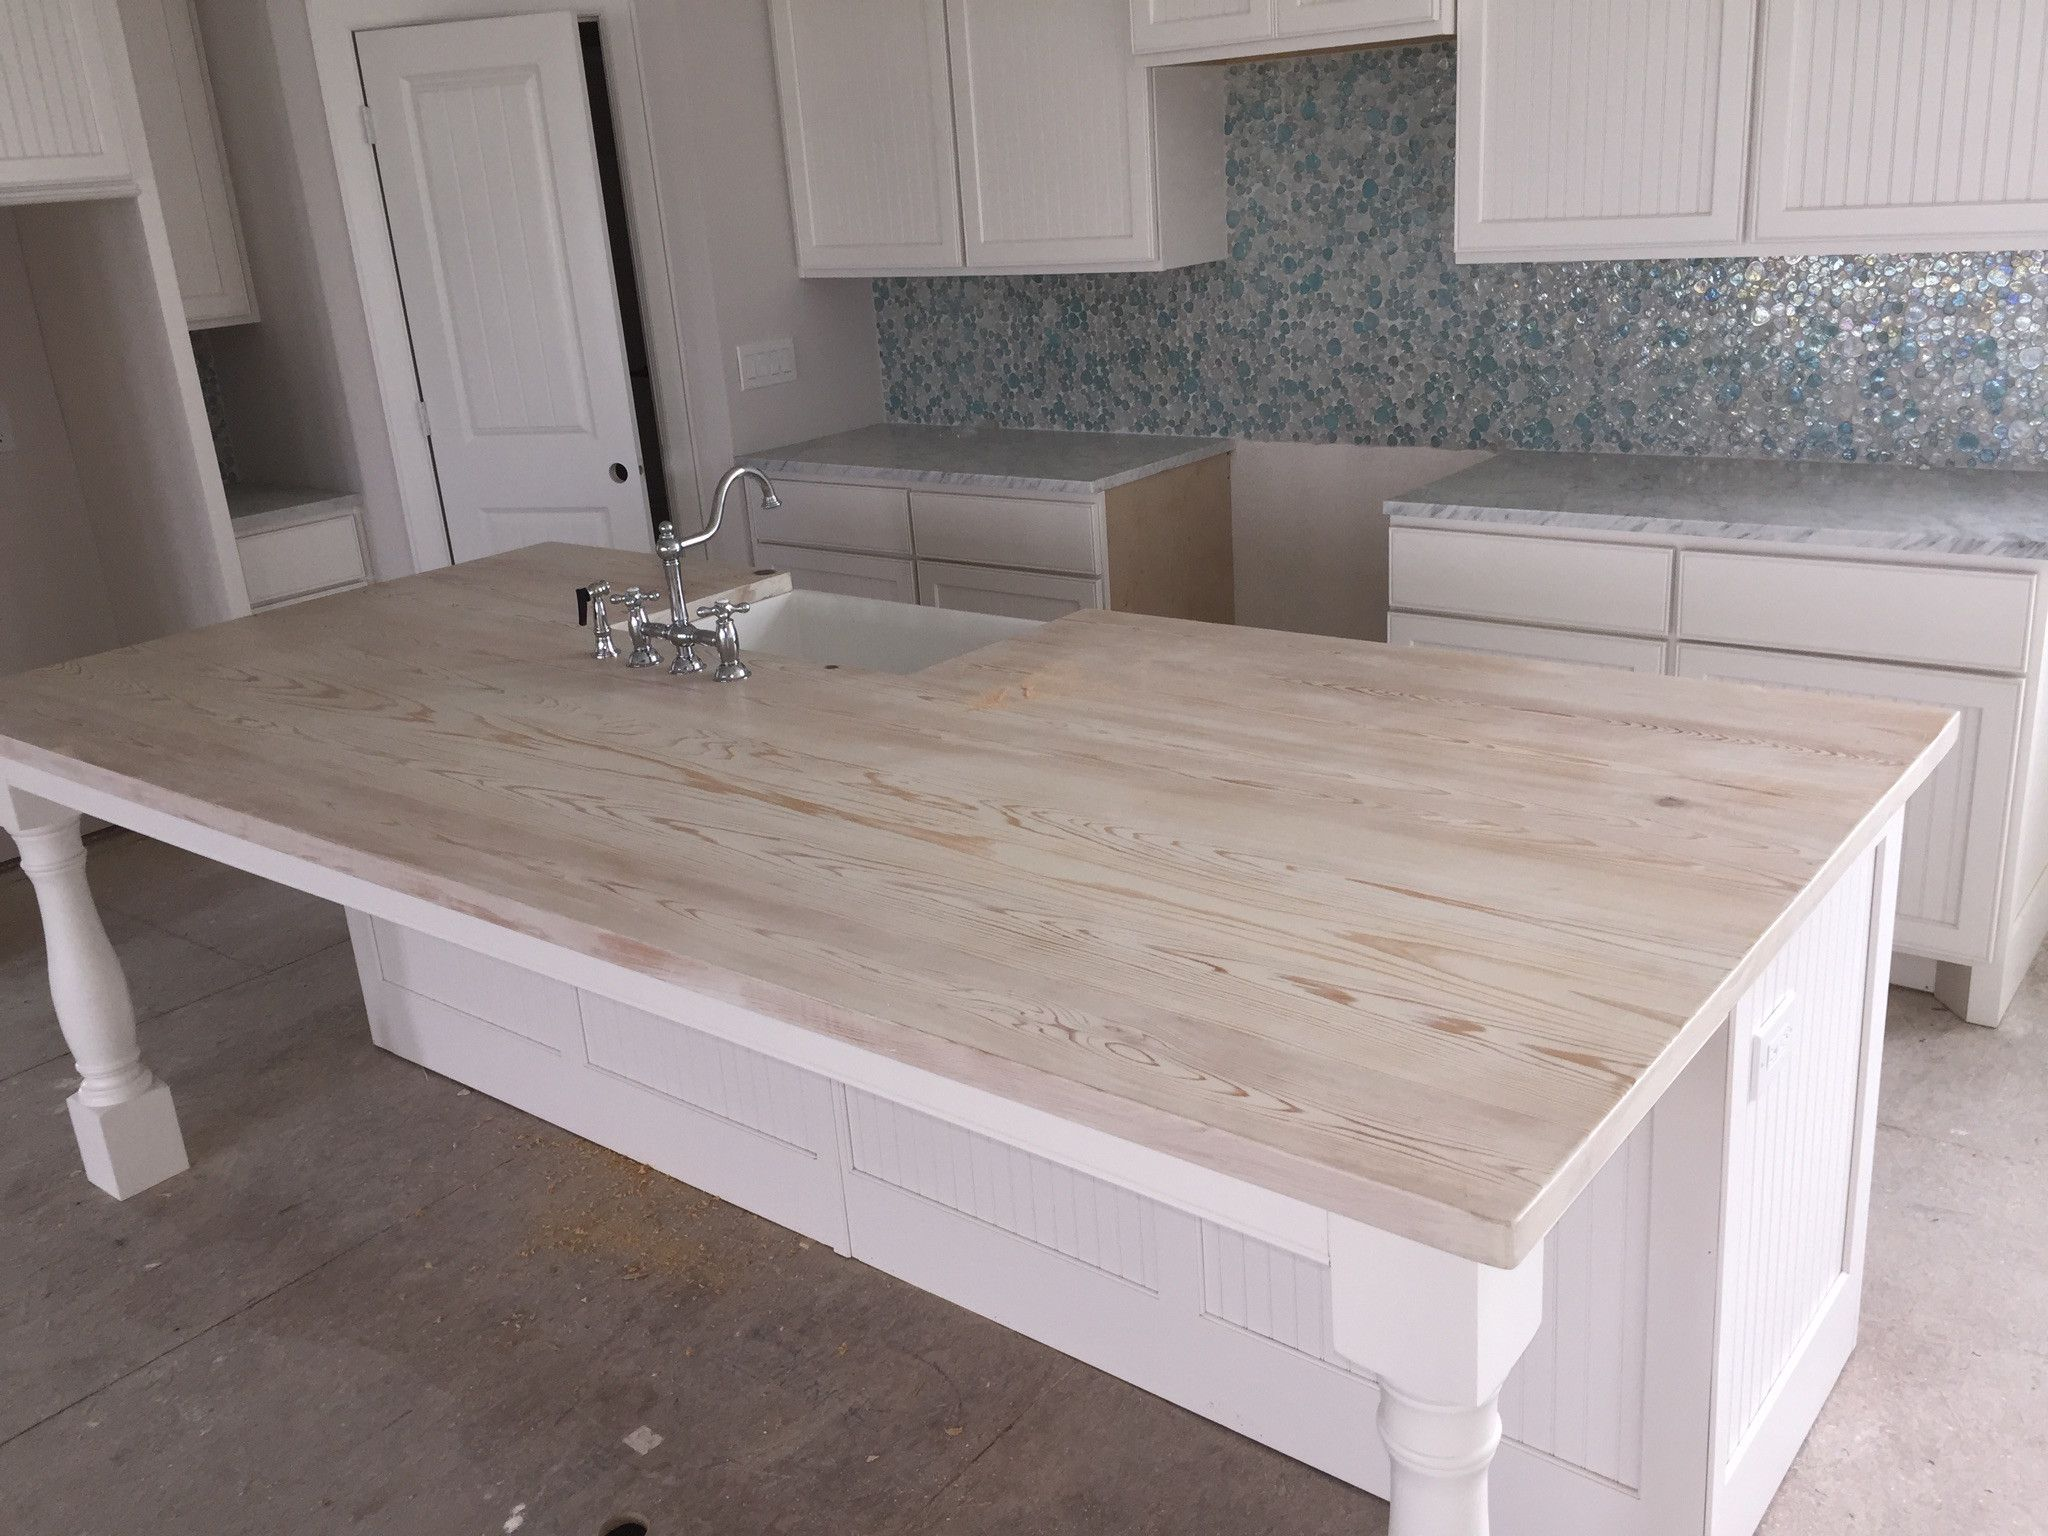 Whitewash Butcher Block Countertop Unique Add Ons In 2019